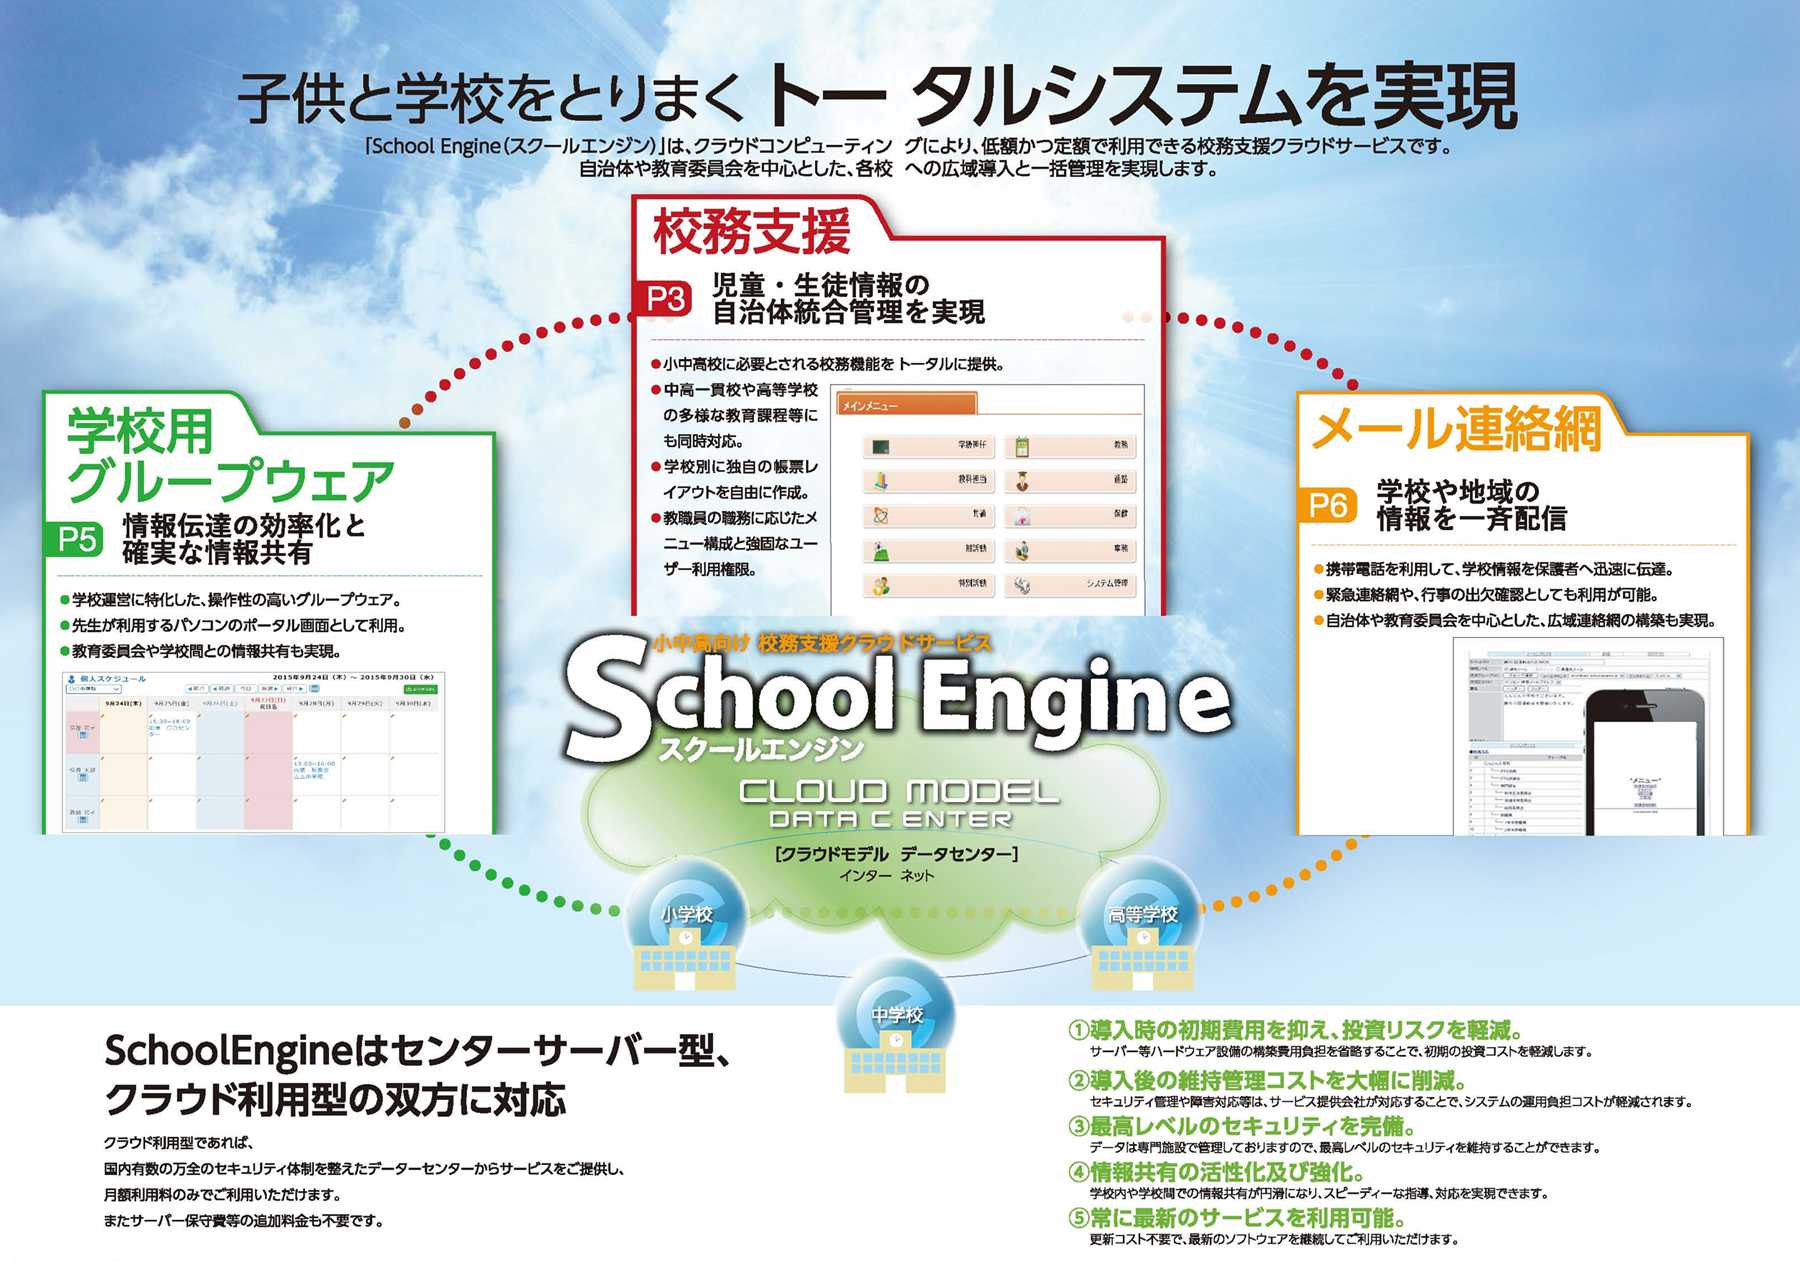 School Engine